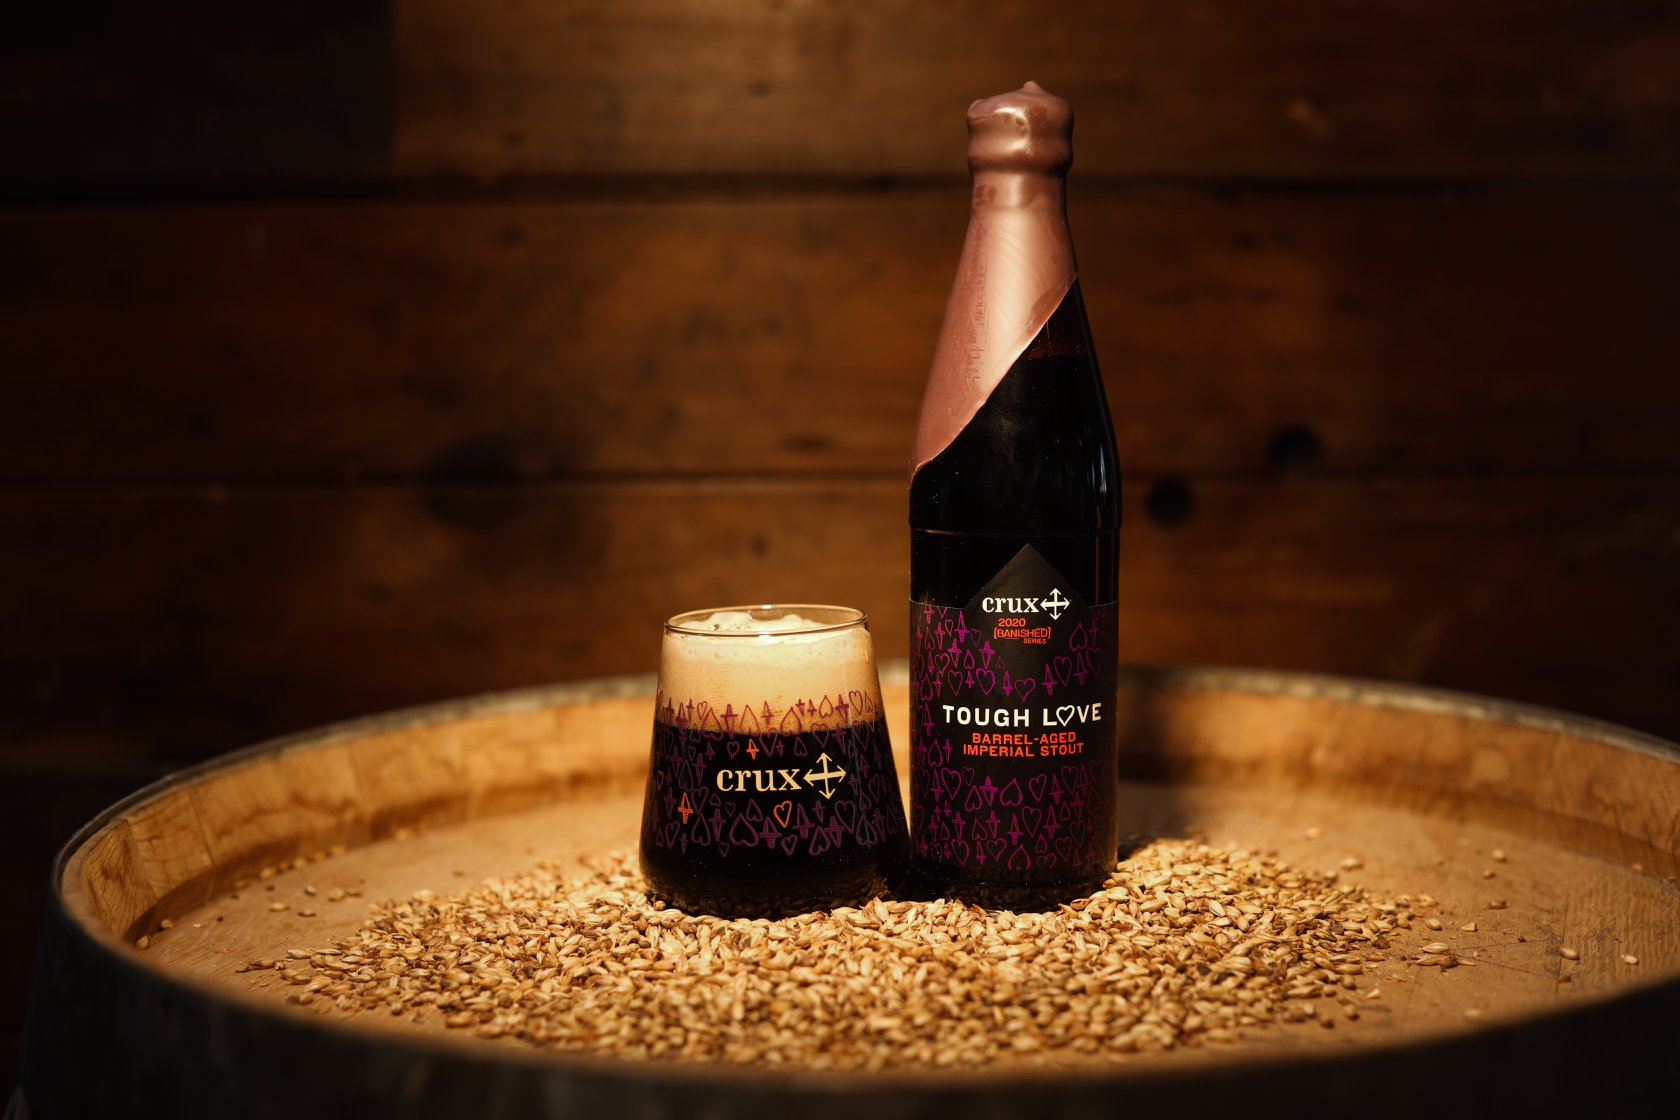 image of Tough Love Barrel-Aged Imperial Stout courtesy of Crux Fermentation Project